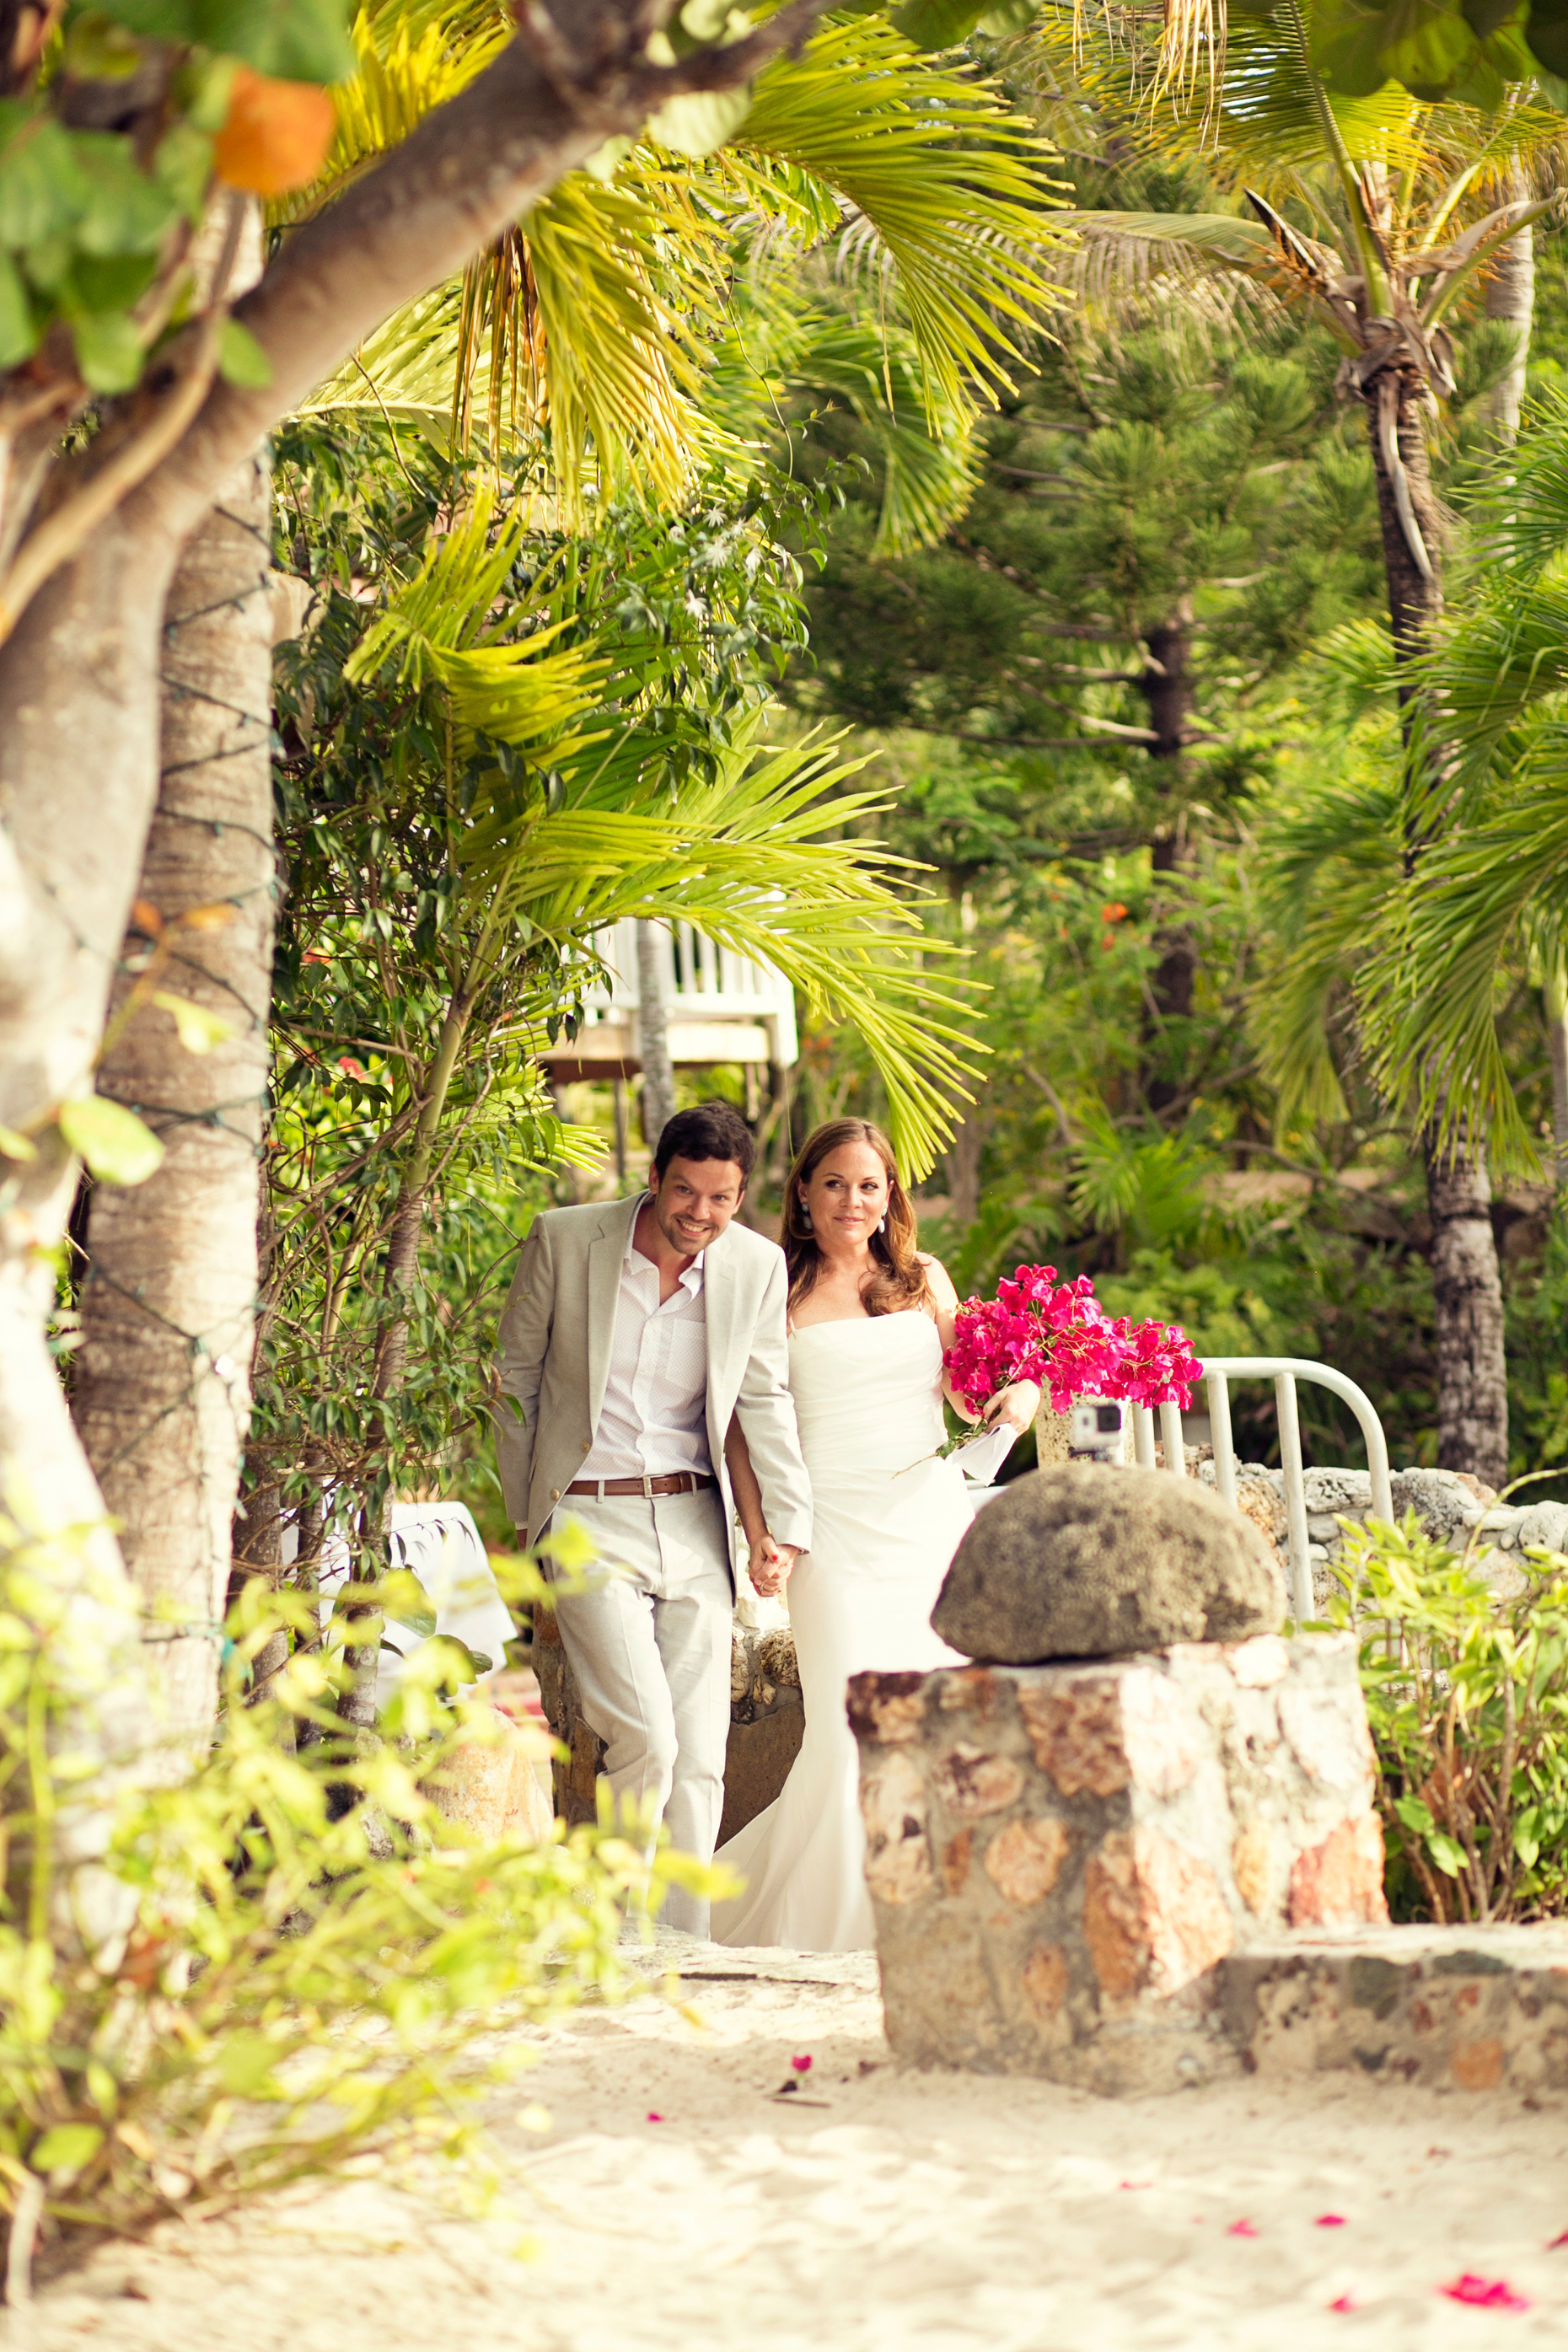 Destination Wedding Photography_VirginIslands_JamiSaunders_023